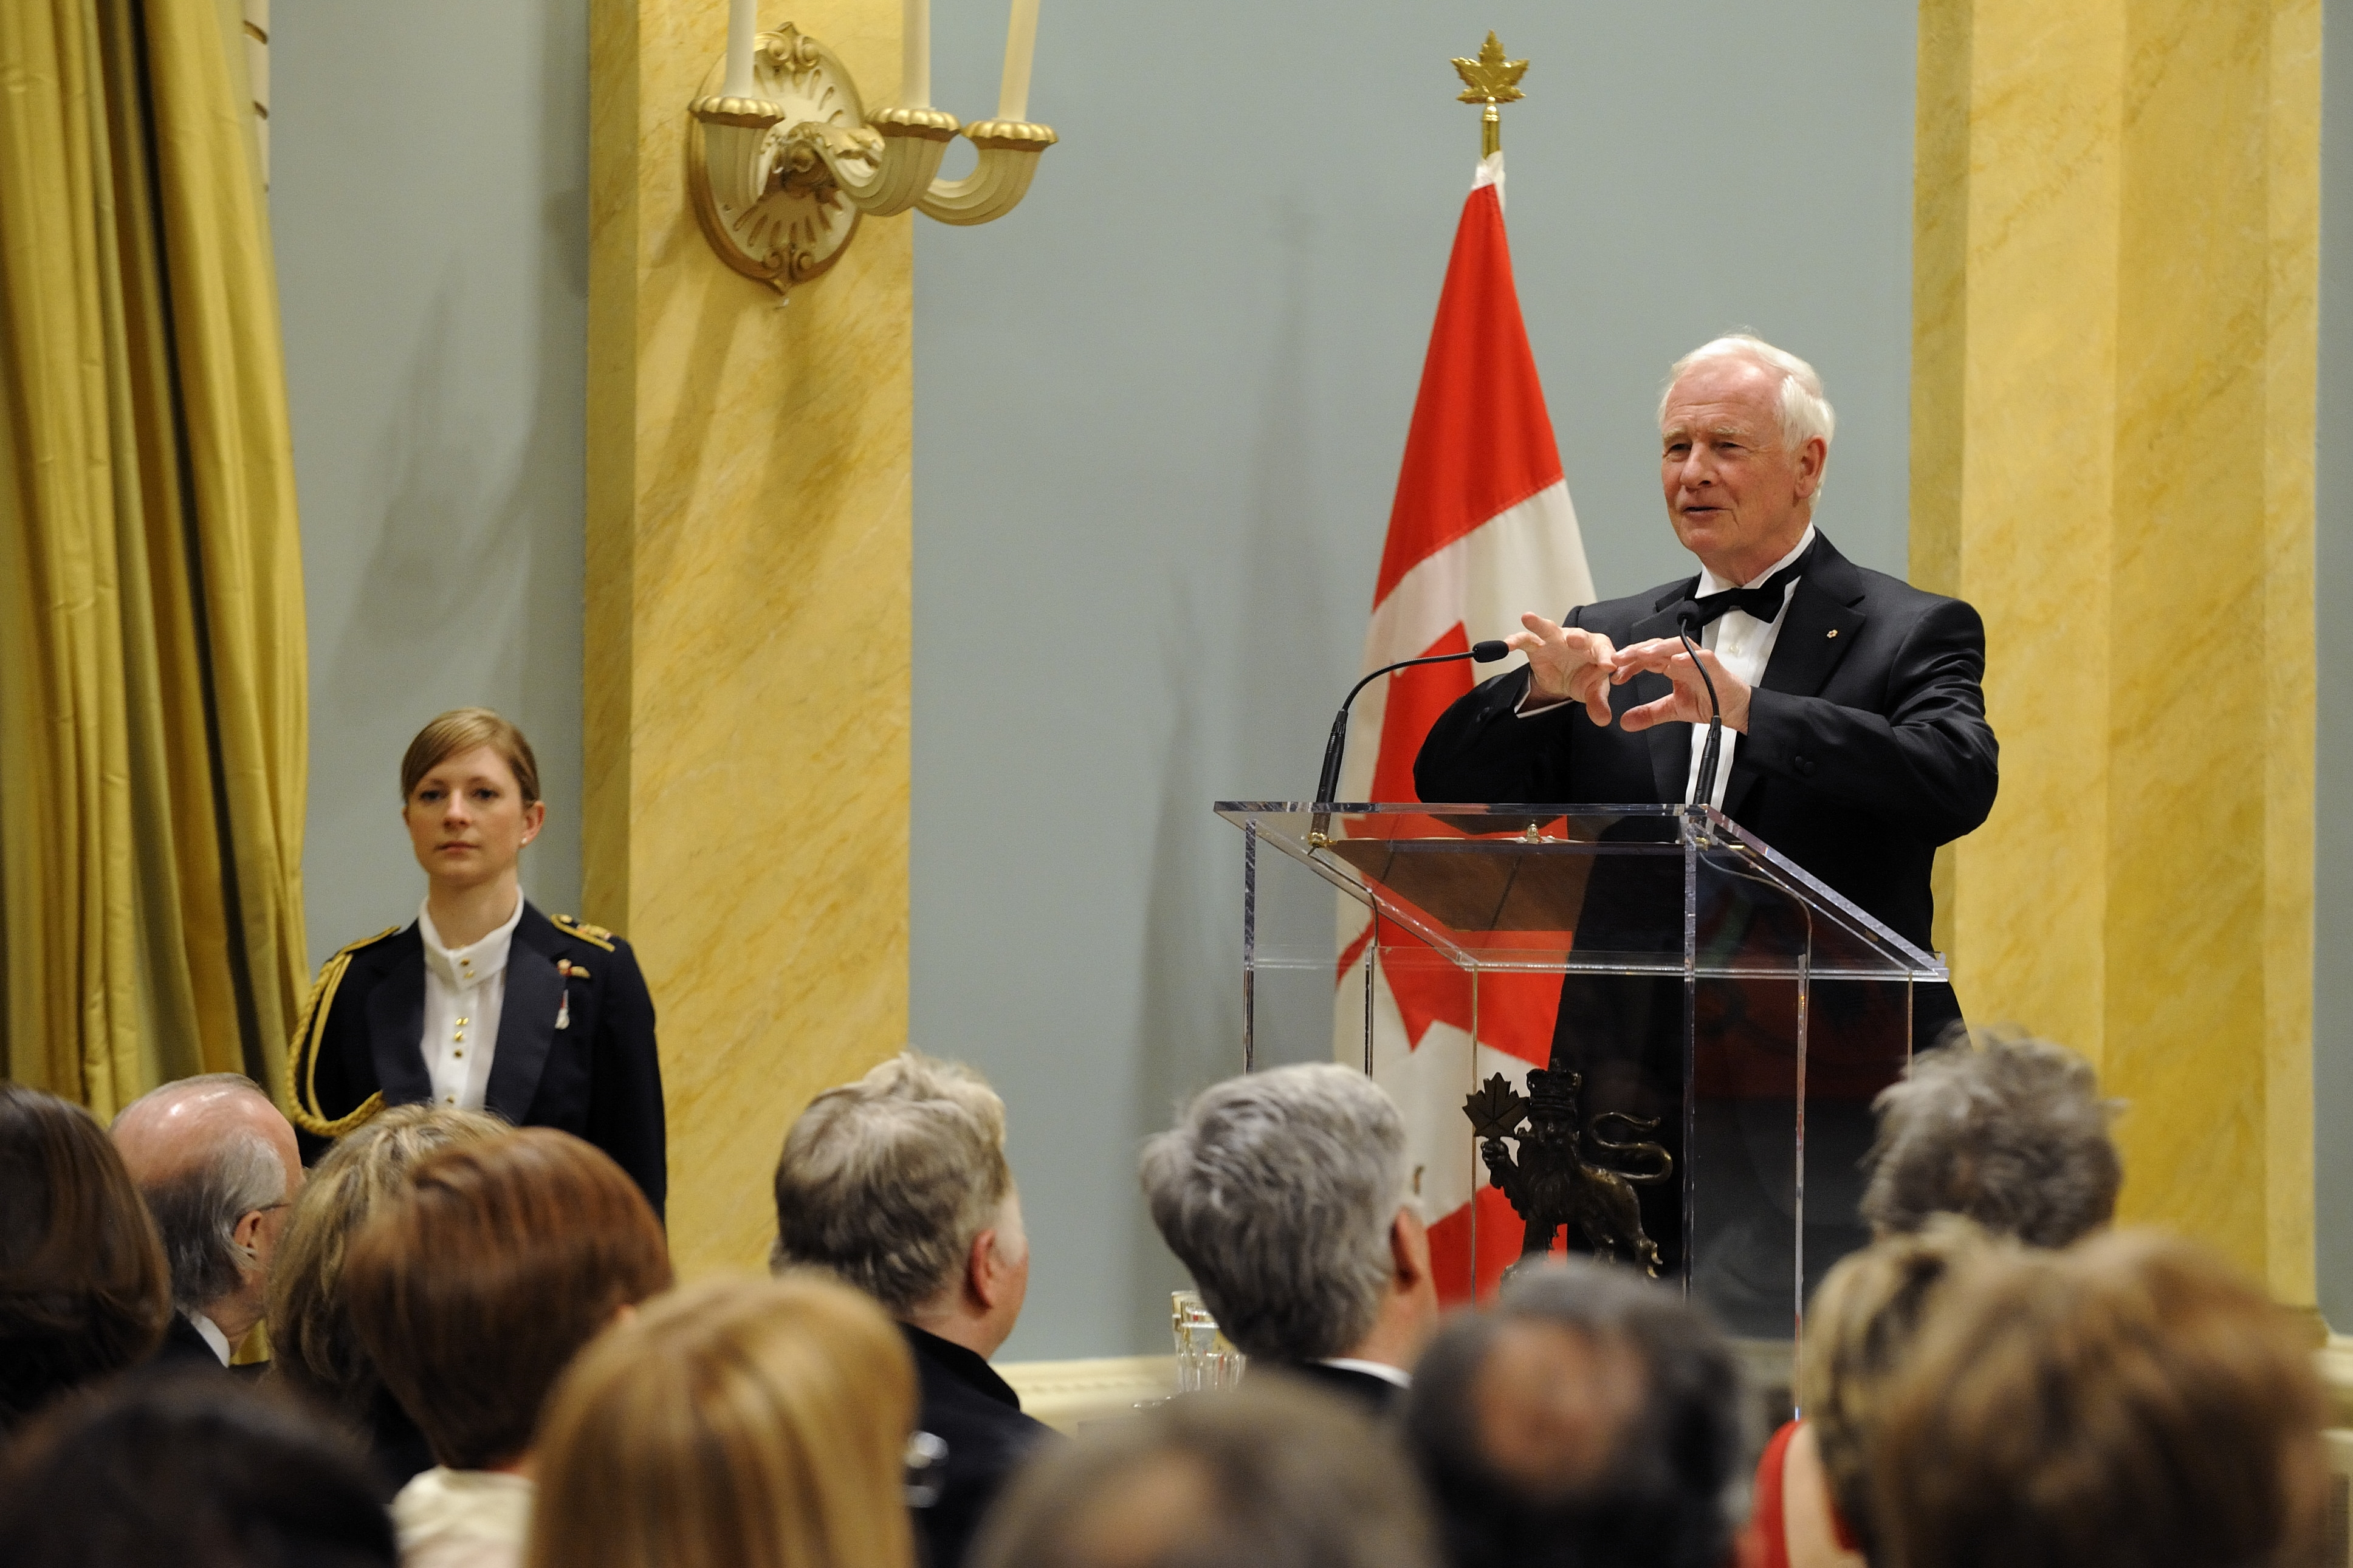 The Governor General's Awards in Visual and Media Arts are Canada's foremost awards for excellence in these artistic disciplines. The prizes are awarded annually to visual and media artists for distinguished career achievement in visual arts, architecture, independent film and video, or audio and new media. His Excellency the Right Honourable David Johnston, Governor General of Canada, delivered a speech on this occasion.